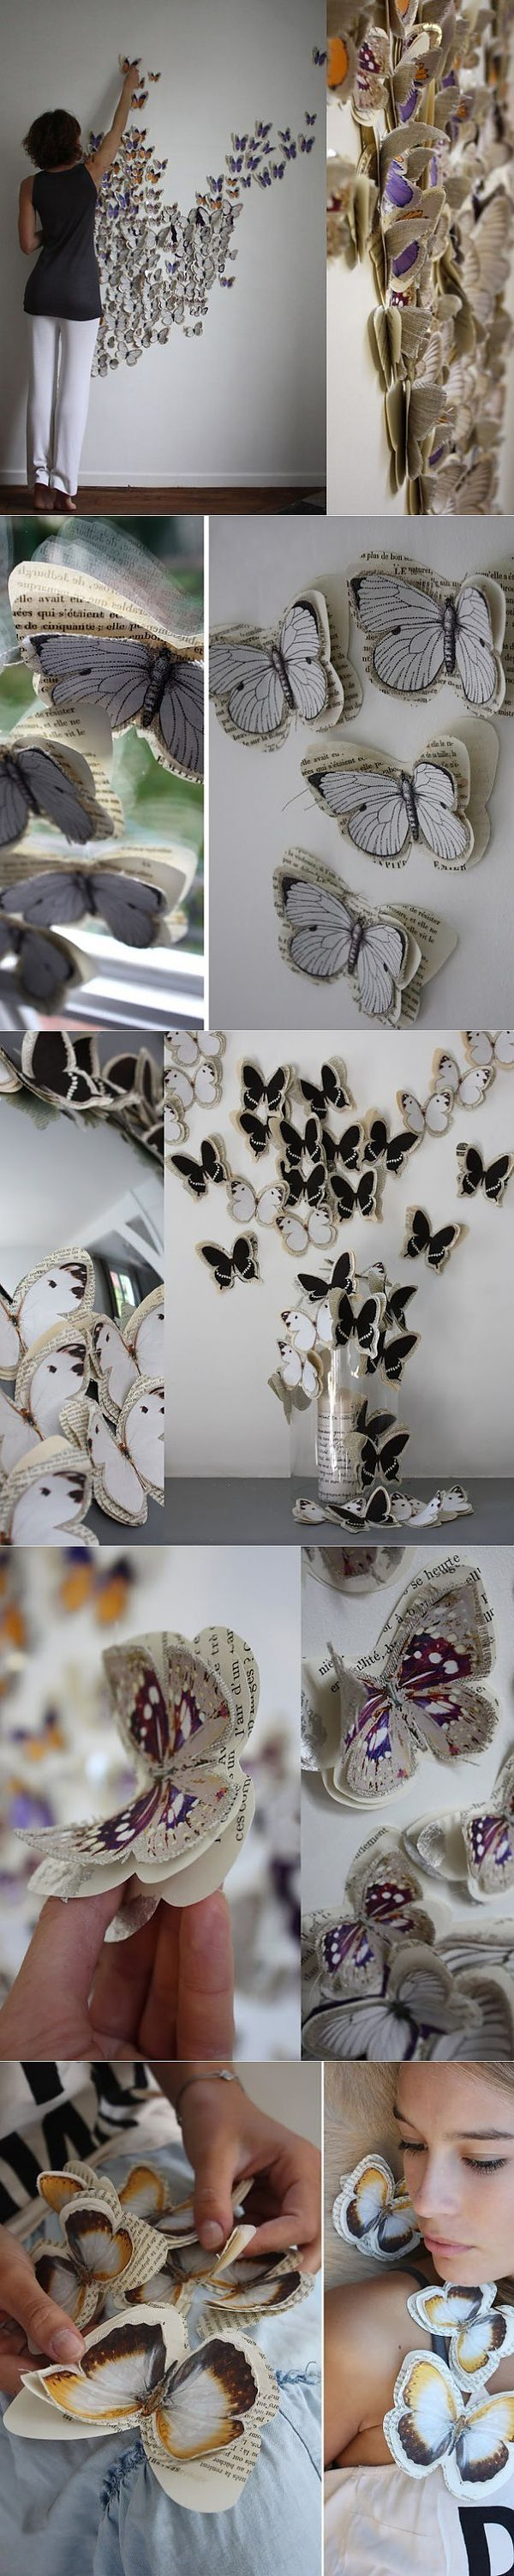 112 Best Achados Images On Pinterest Creative Crafts Bricolage Sakura Moth Hanger 160 Gr